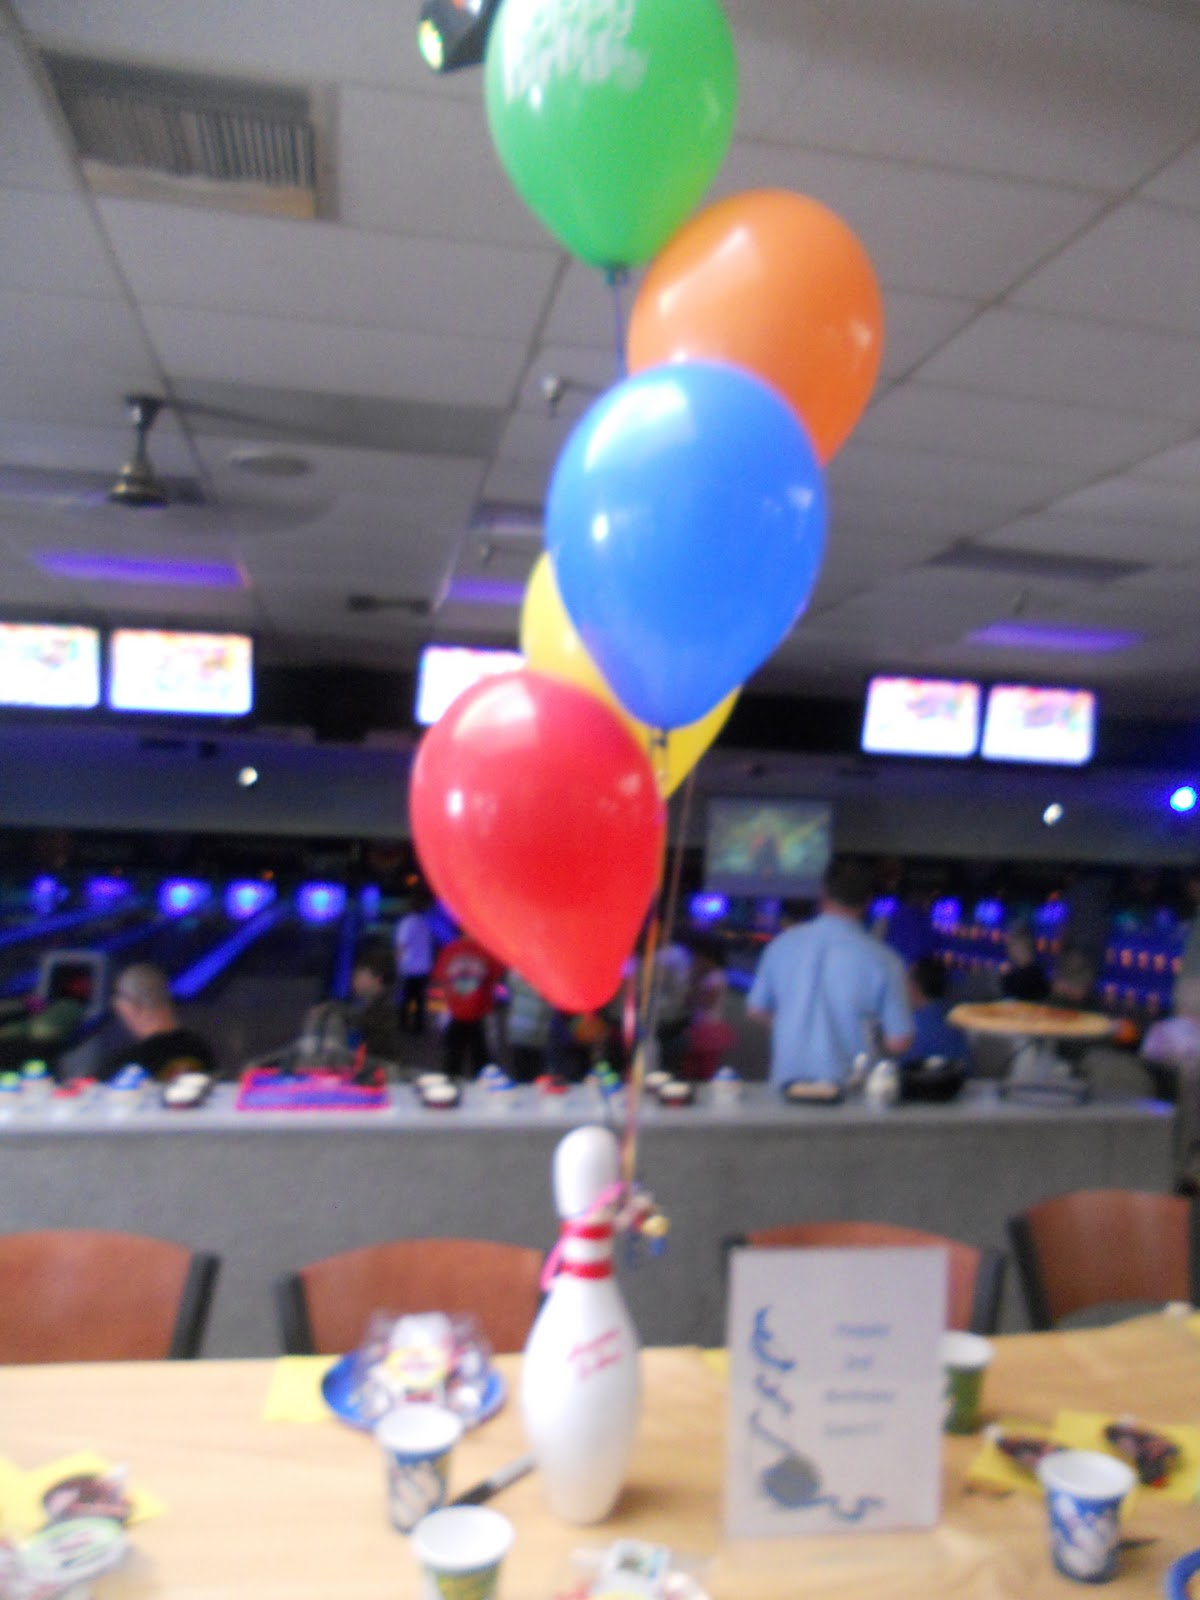 Bowling pin balloons - Pretty Balloons Tied To A Bowling Pin The